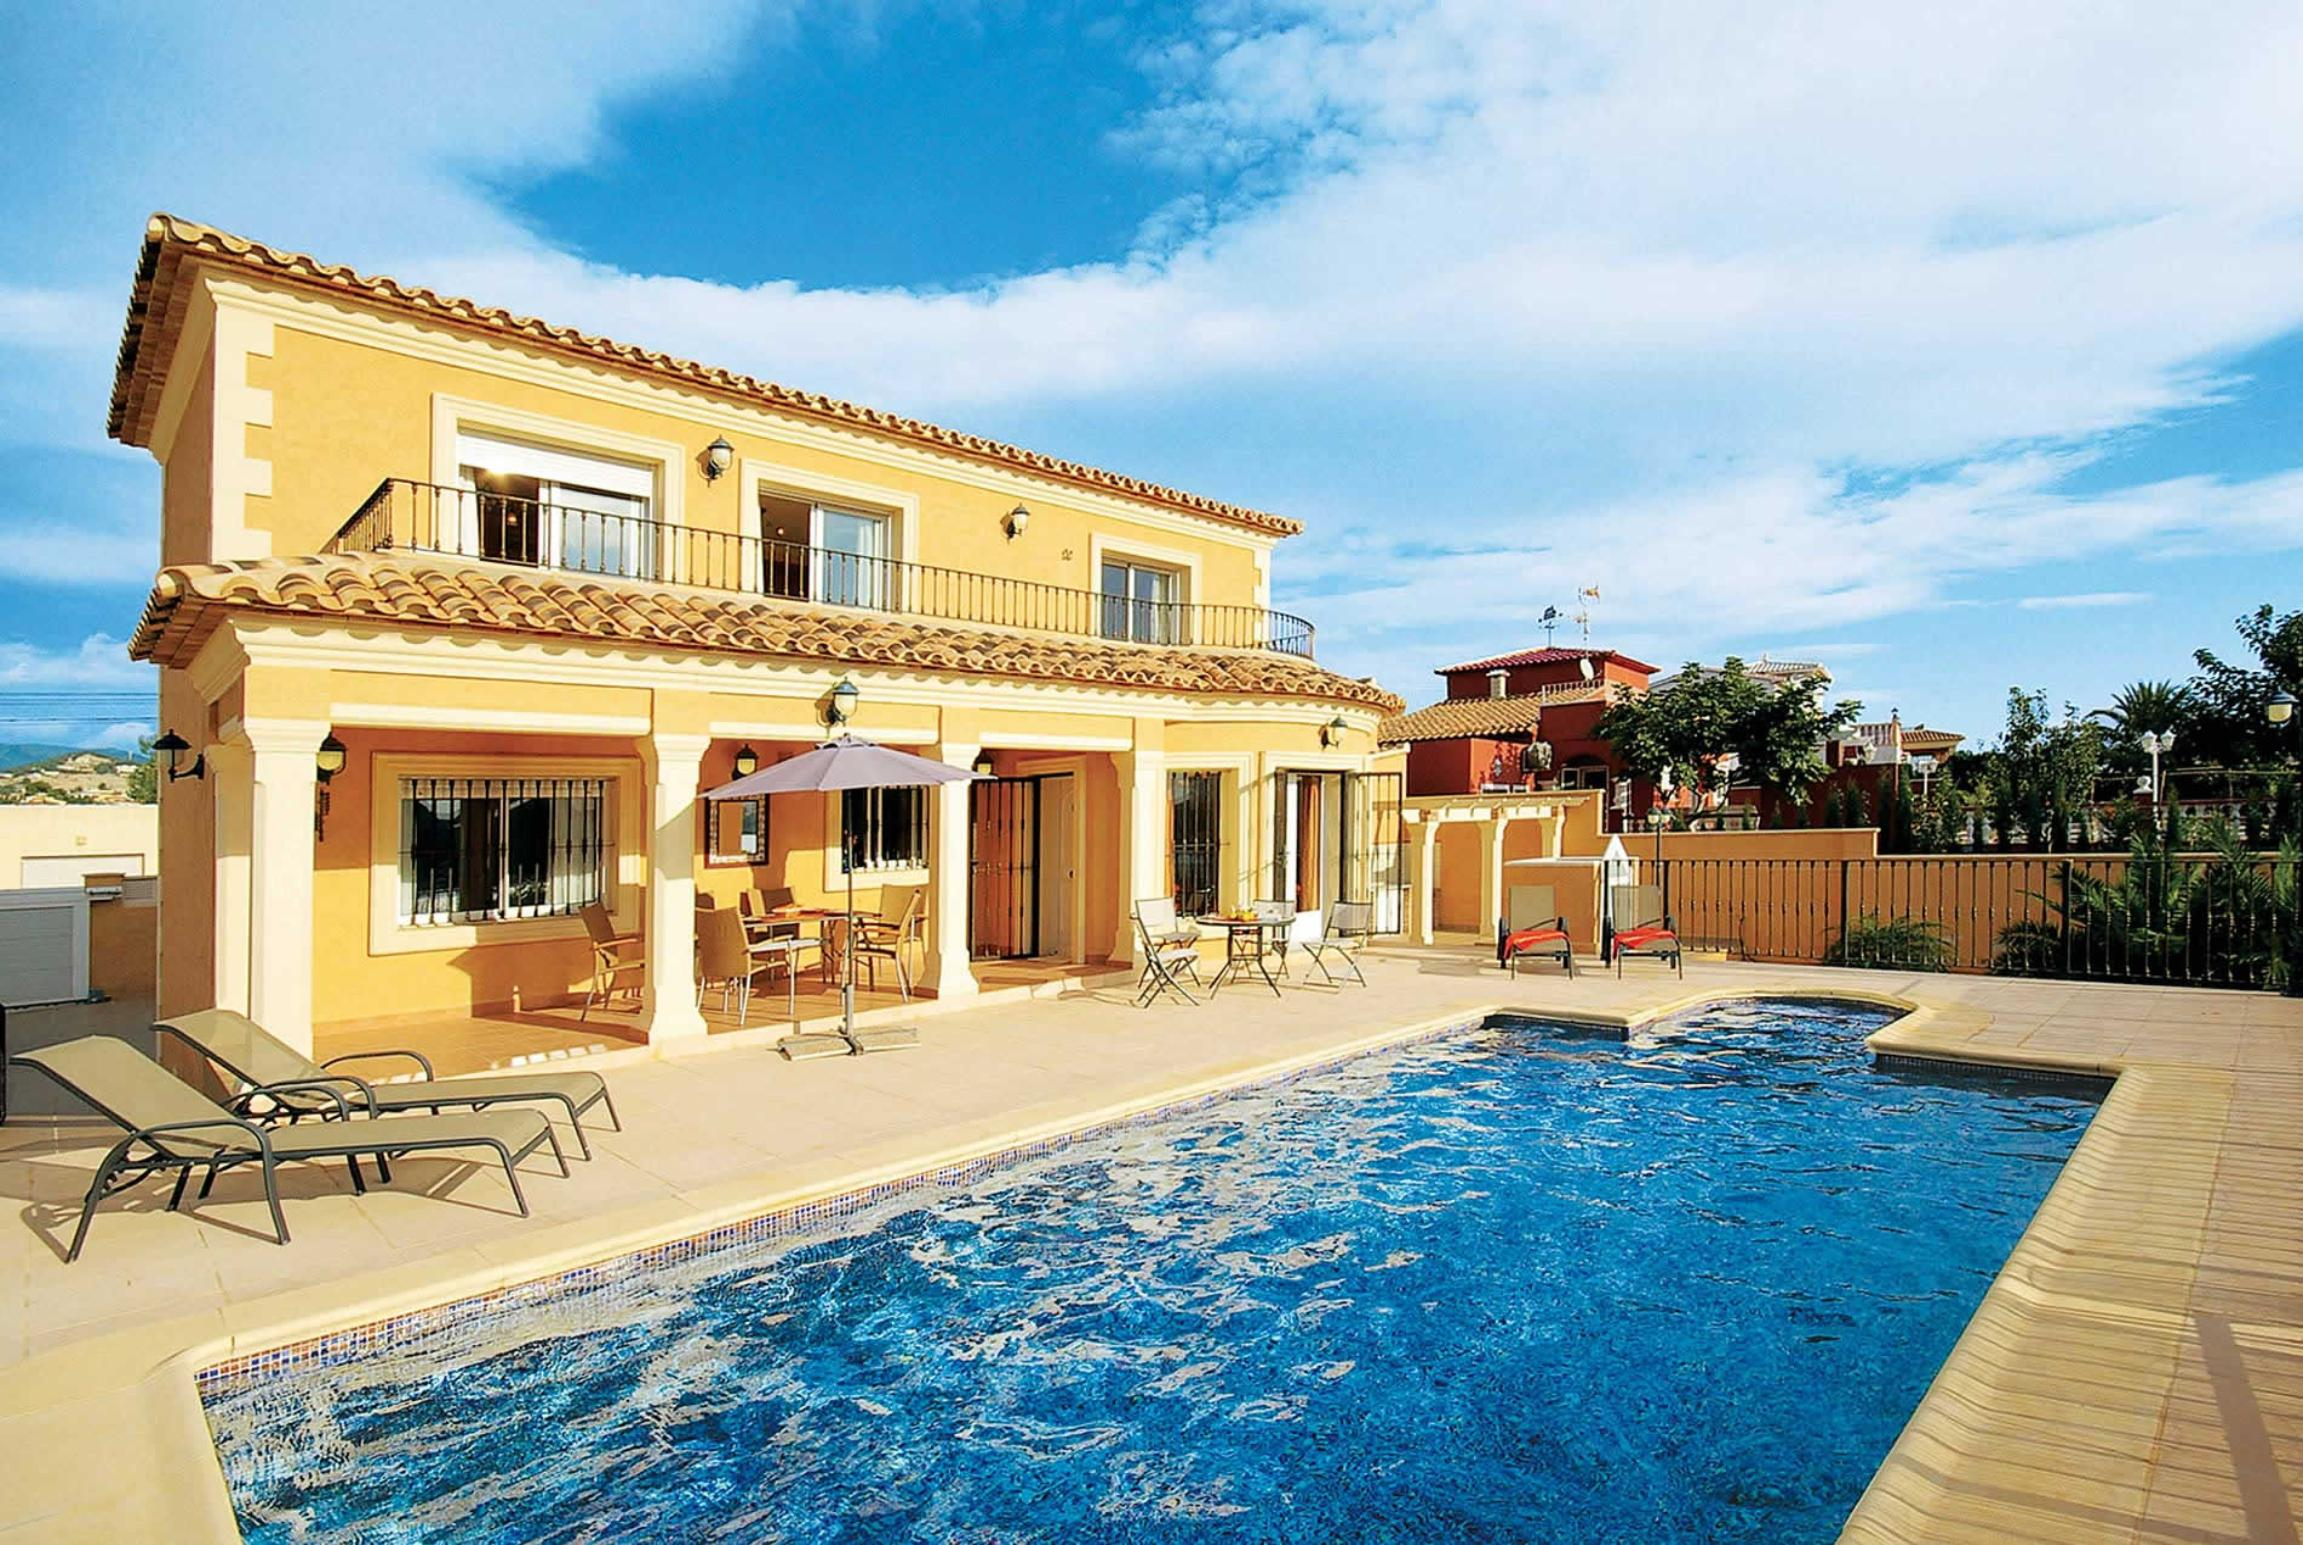 Read more about Mar y Sol villa